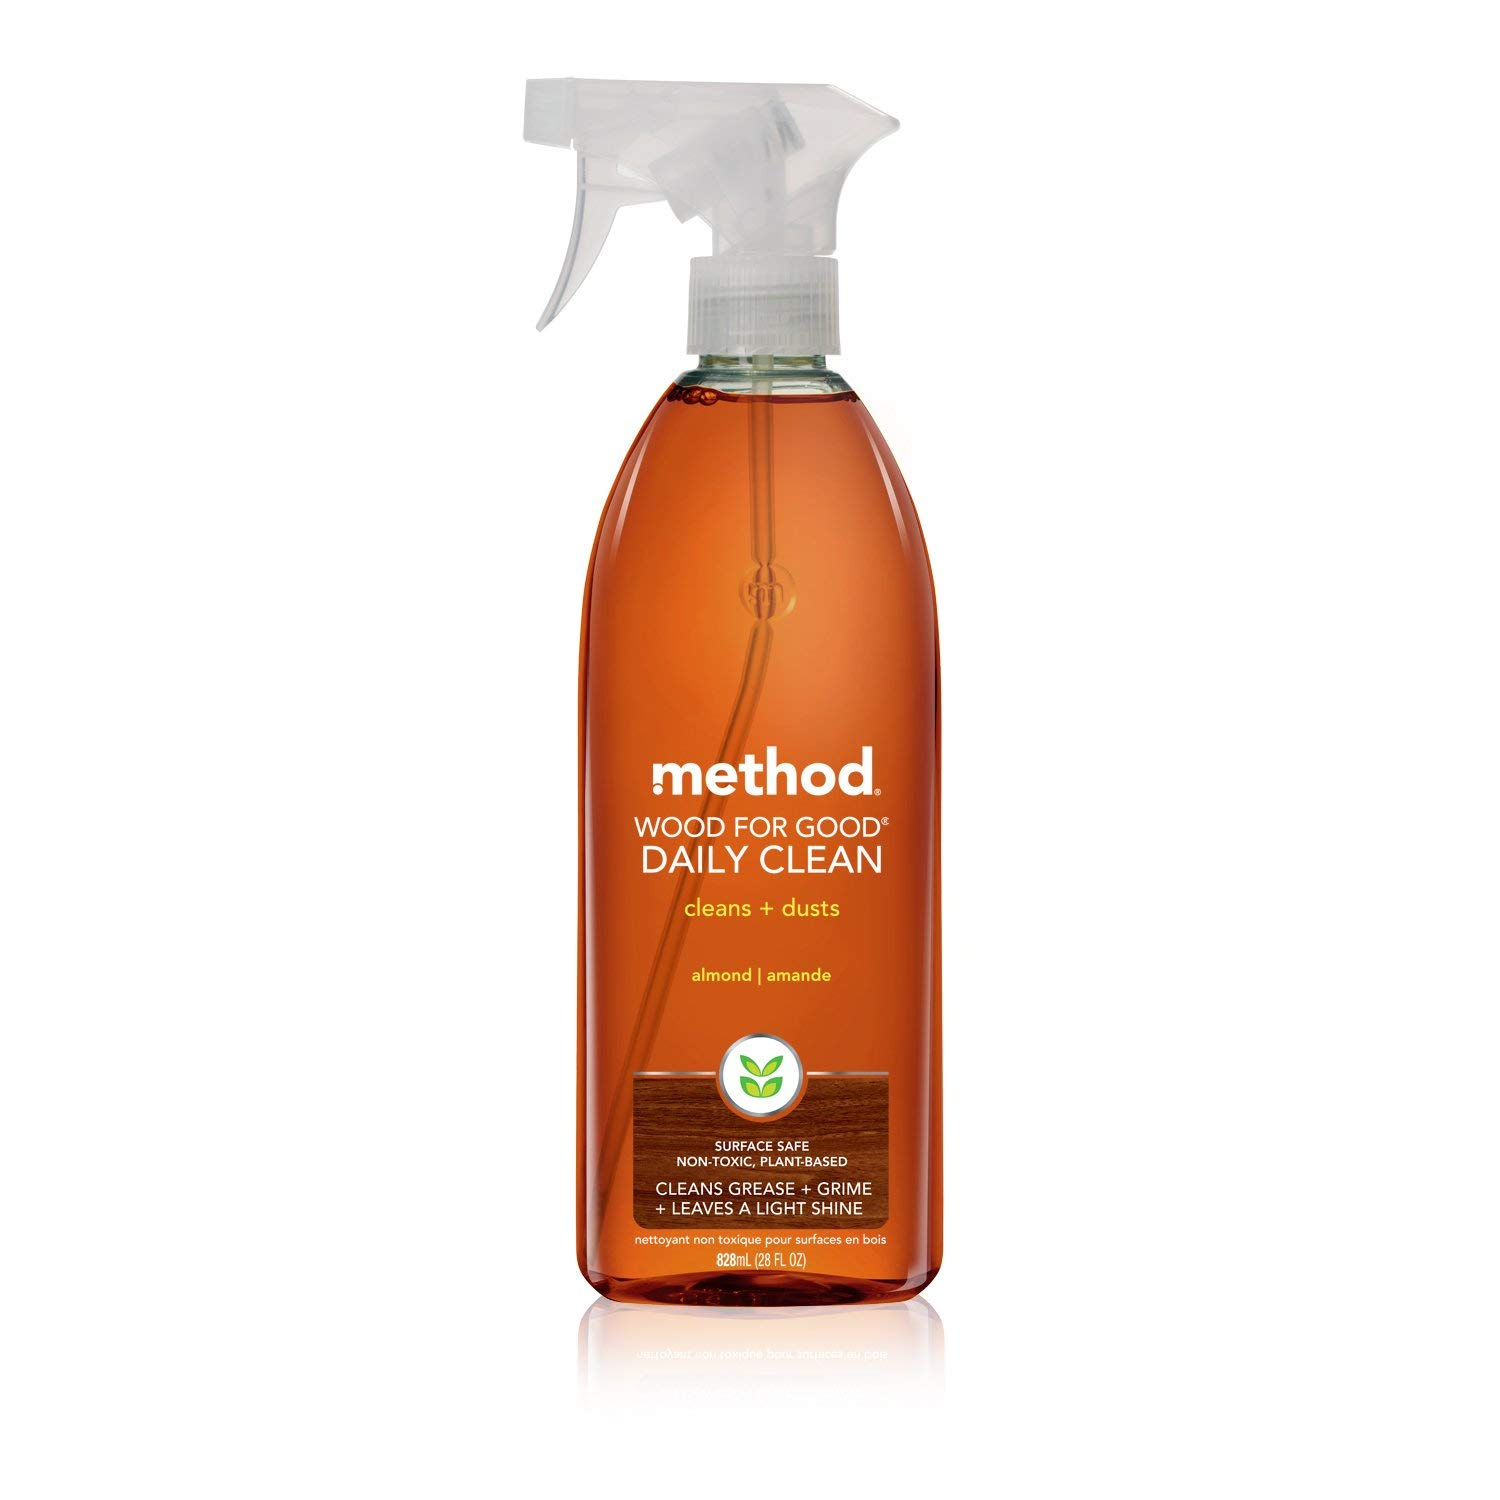 Method Daily Wood Surface Cleaner, 28 Ounce (Pack of 2) by Method